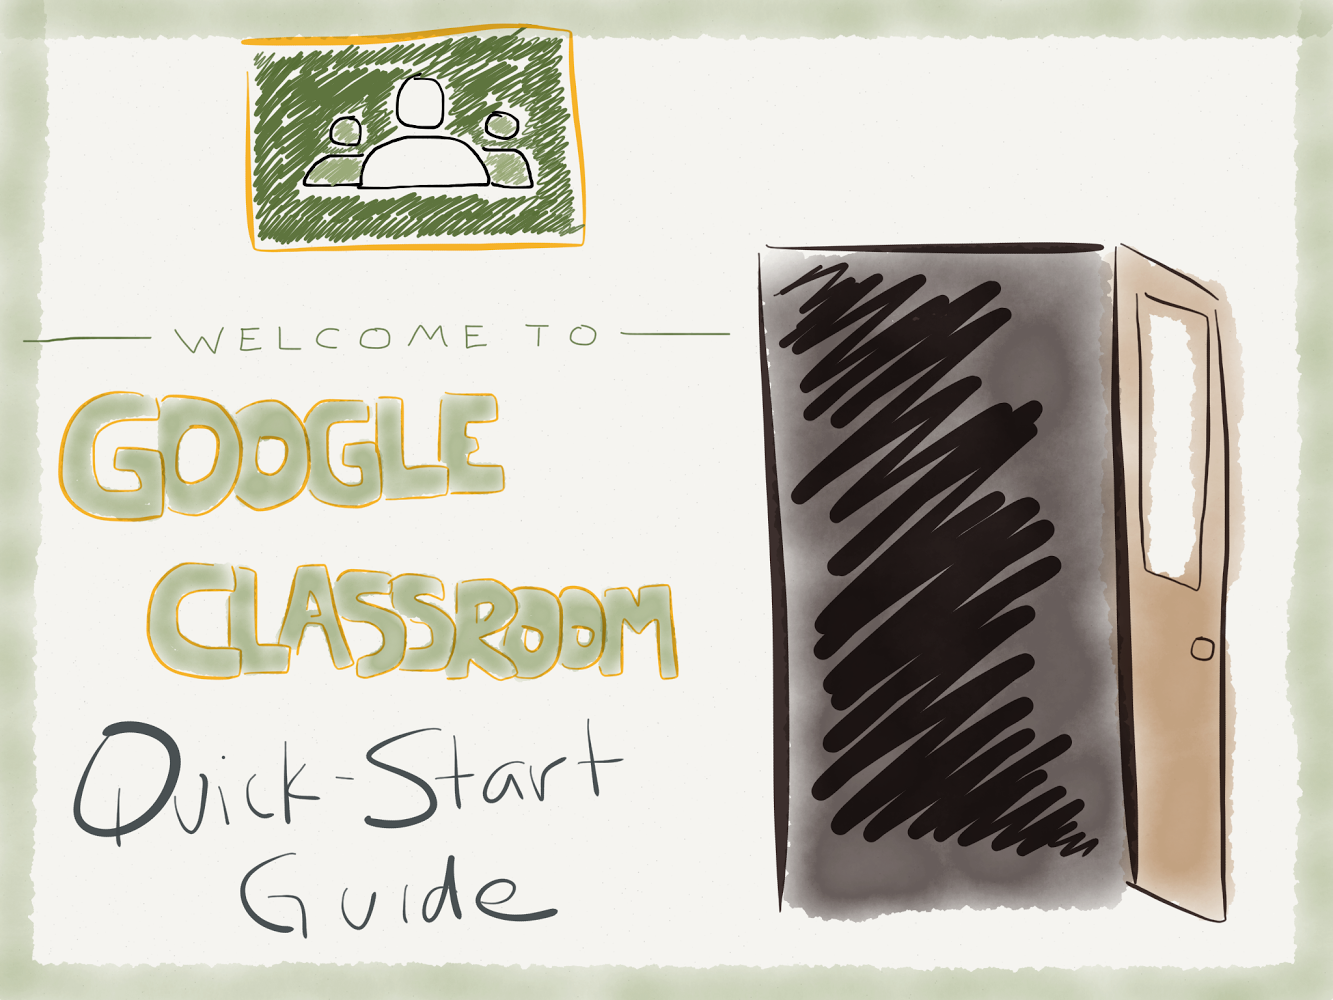 The Google Classroom Quick-Start Guide + tips and tricks!